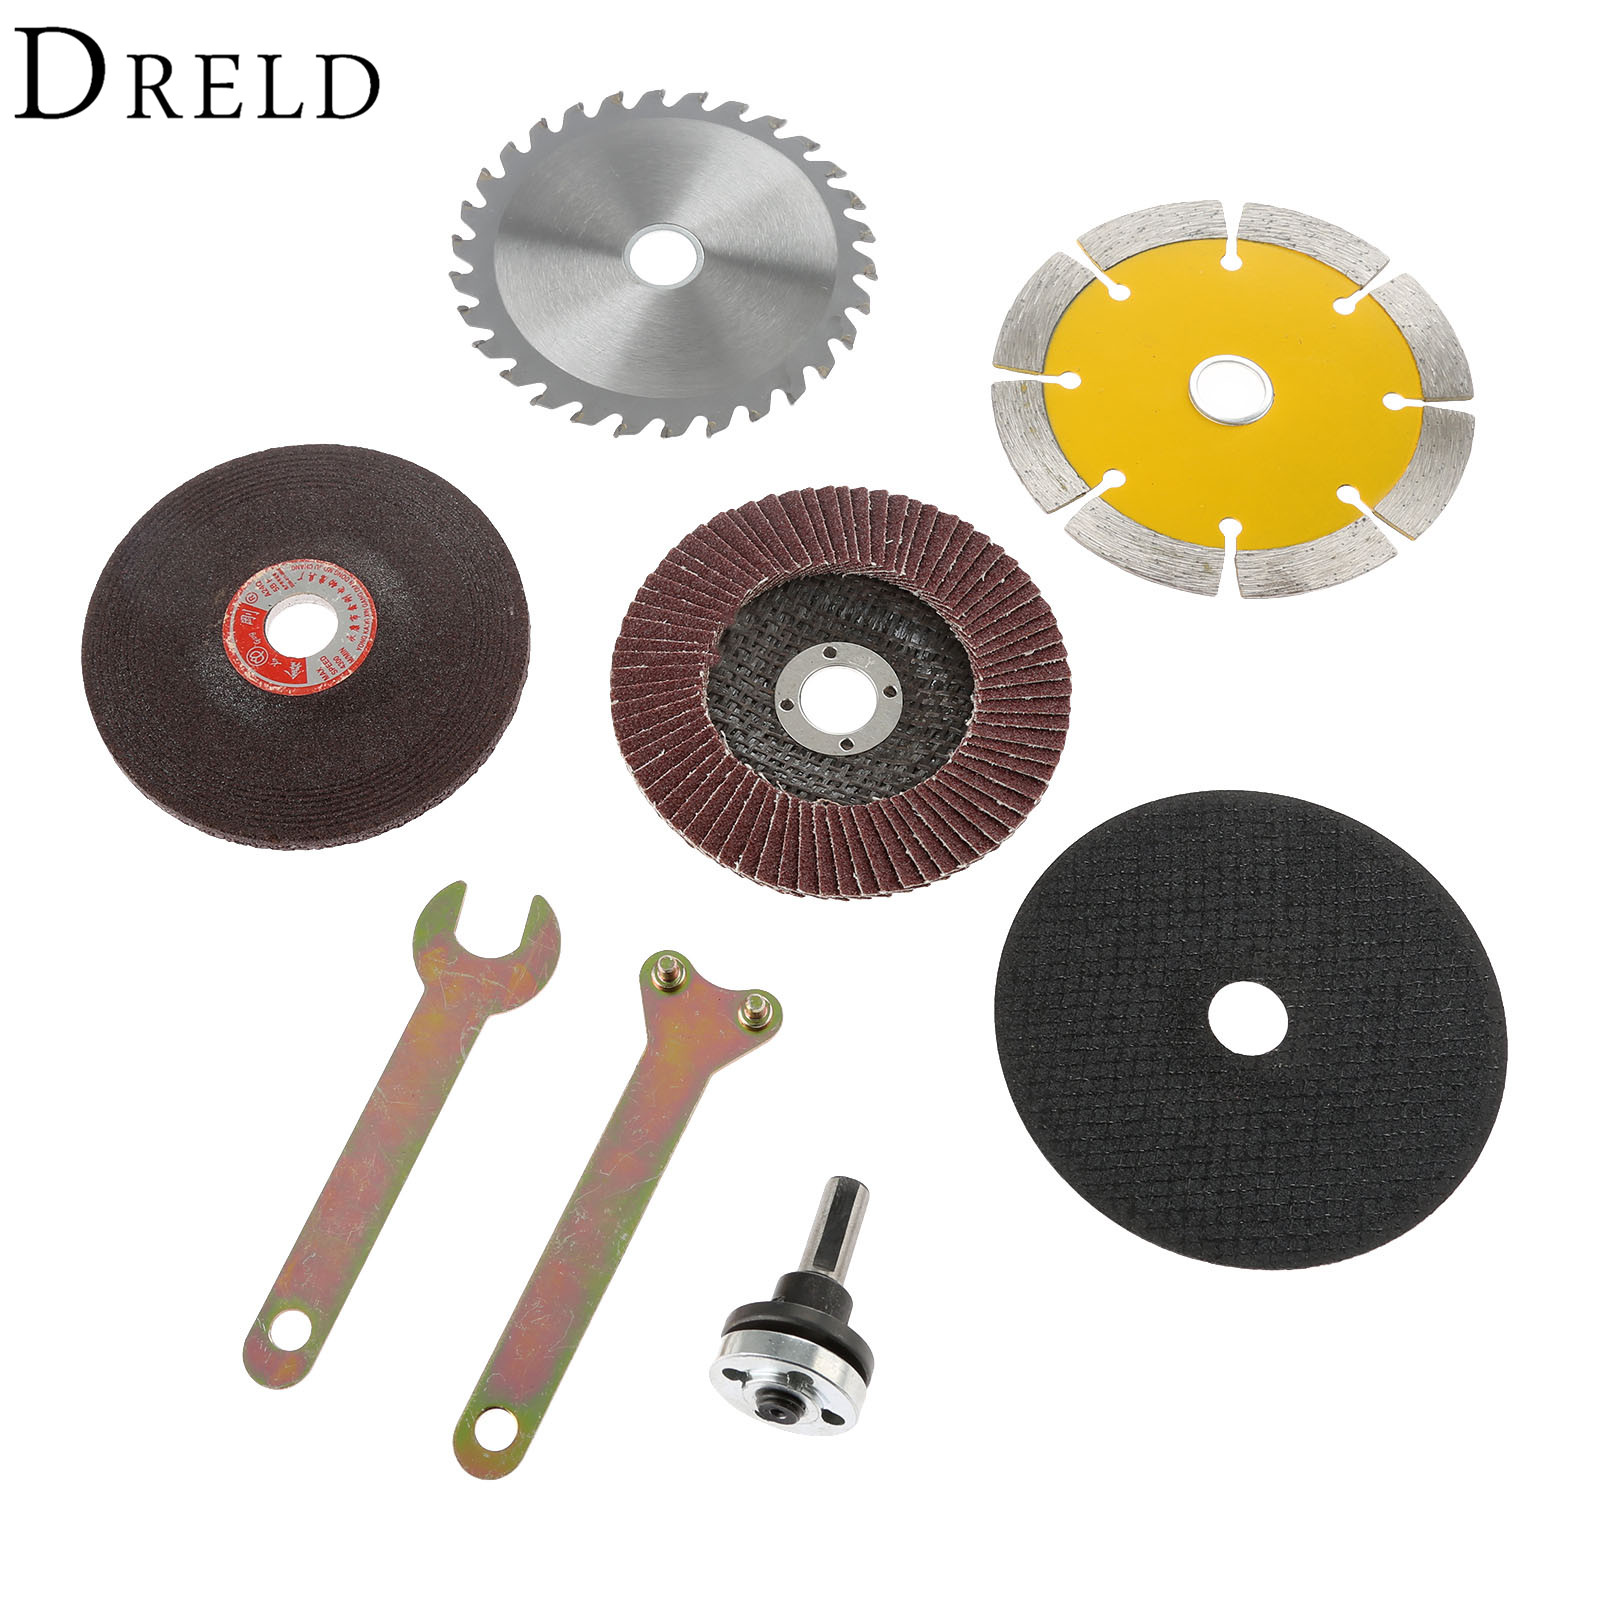 8Pcs Cutting Polishing Grinding Wheel Conversion Shank Power Tools Accessories for Electric Drill Change to Angle Grinder Cutter hoomall electric drill cutting seat stand machine bracket tools set fit for angle grinder accessories polishing cutting 10 13mm